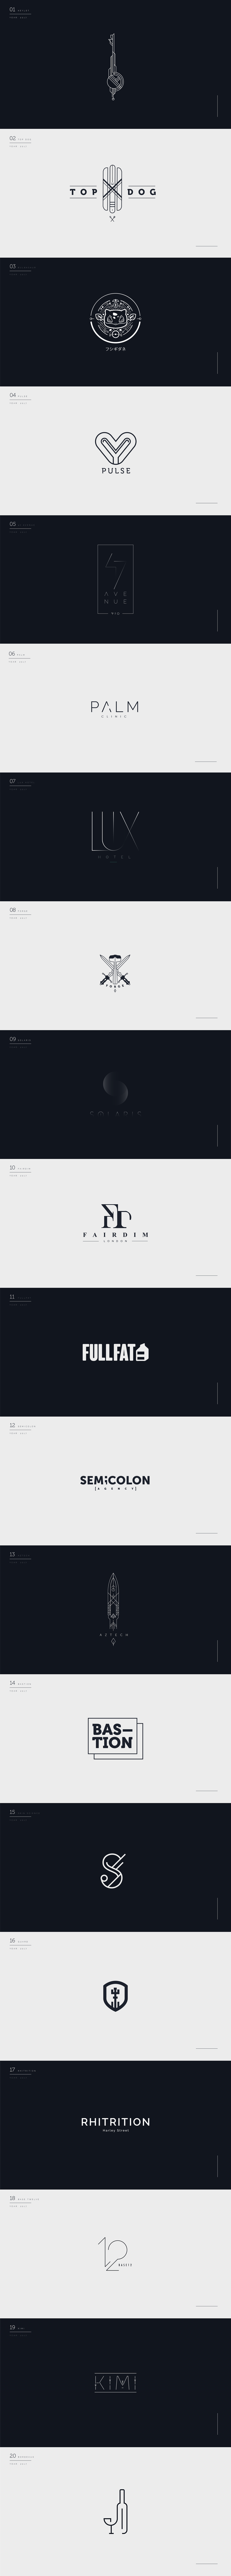 A collection of branding projects conceptualised and developed throughout 2017.